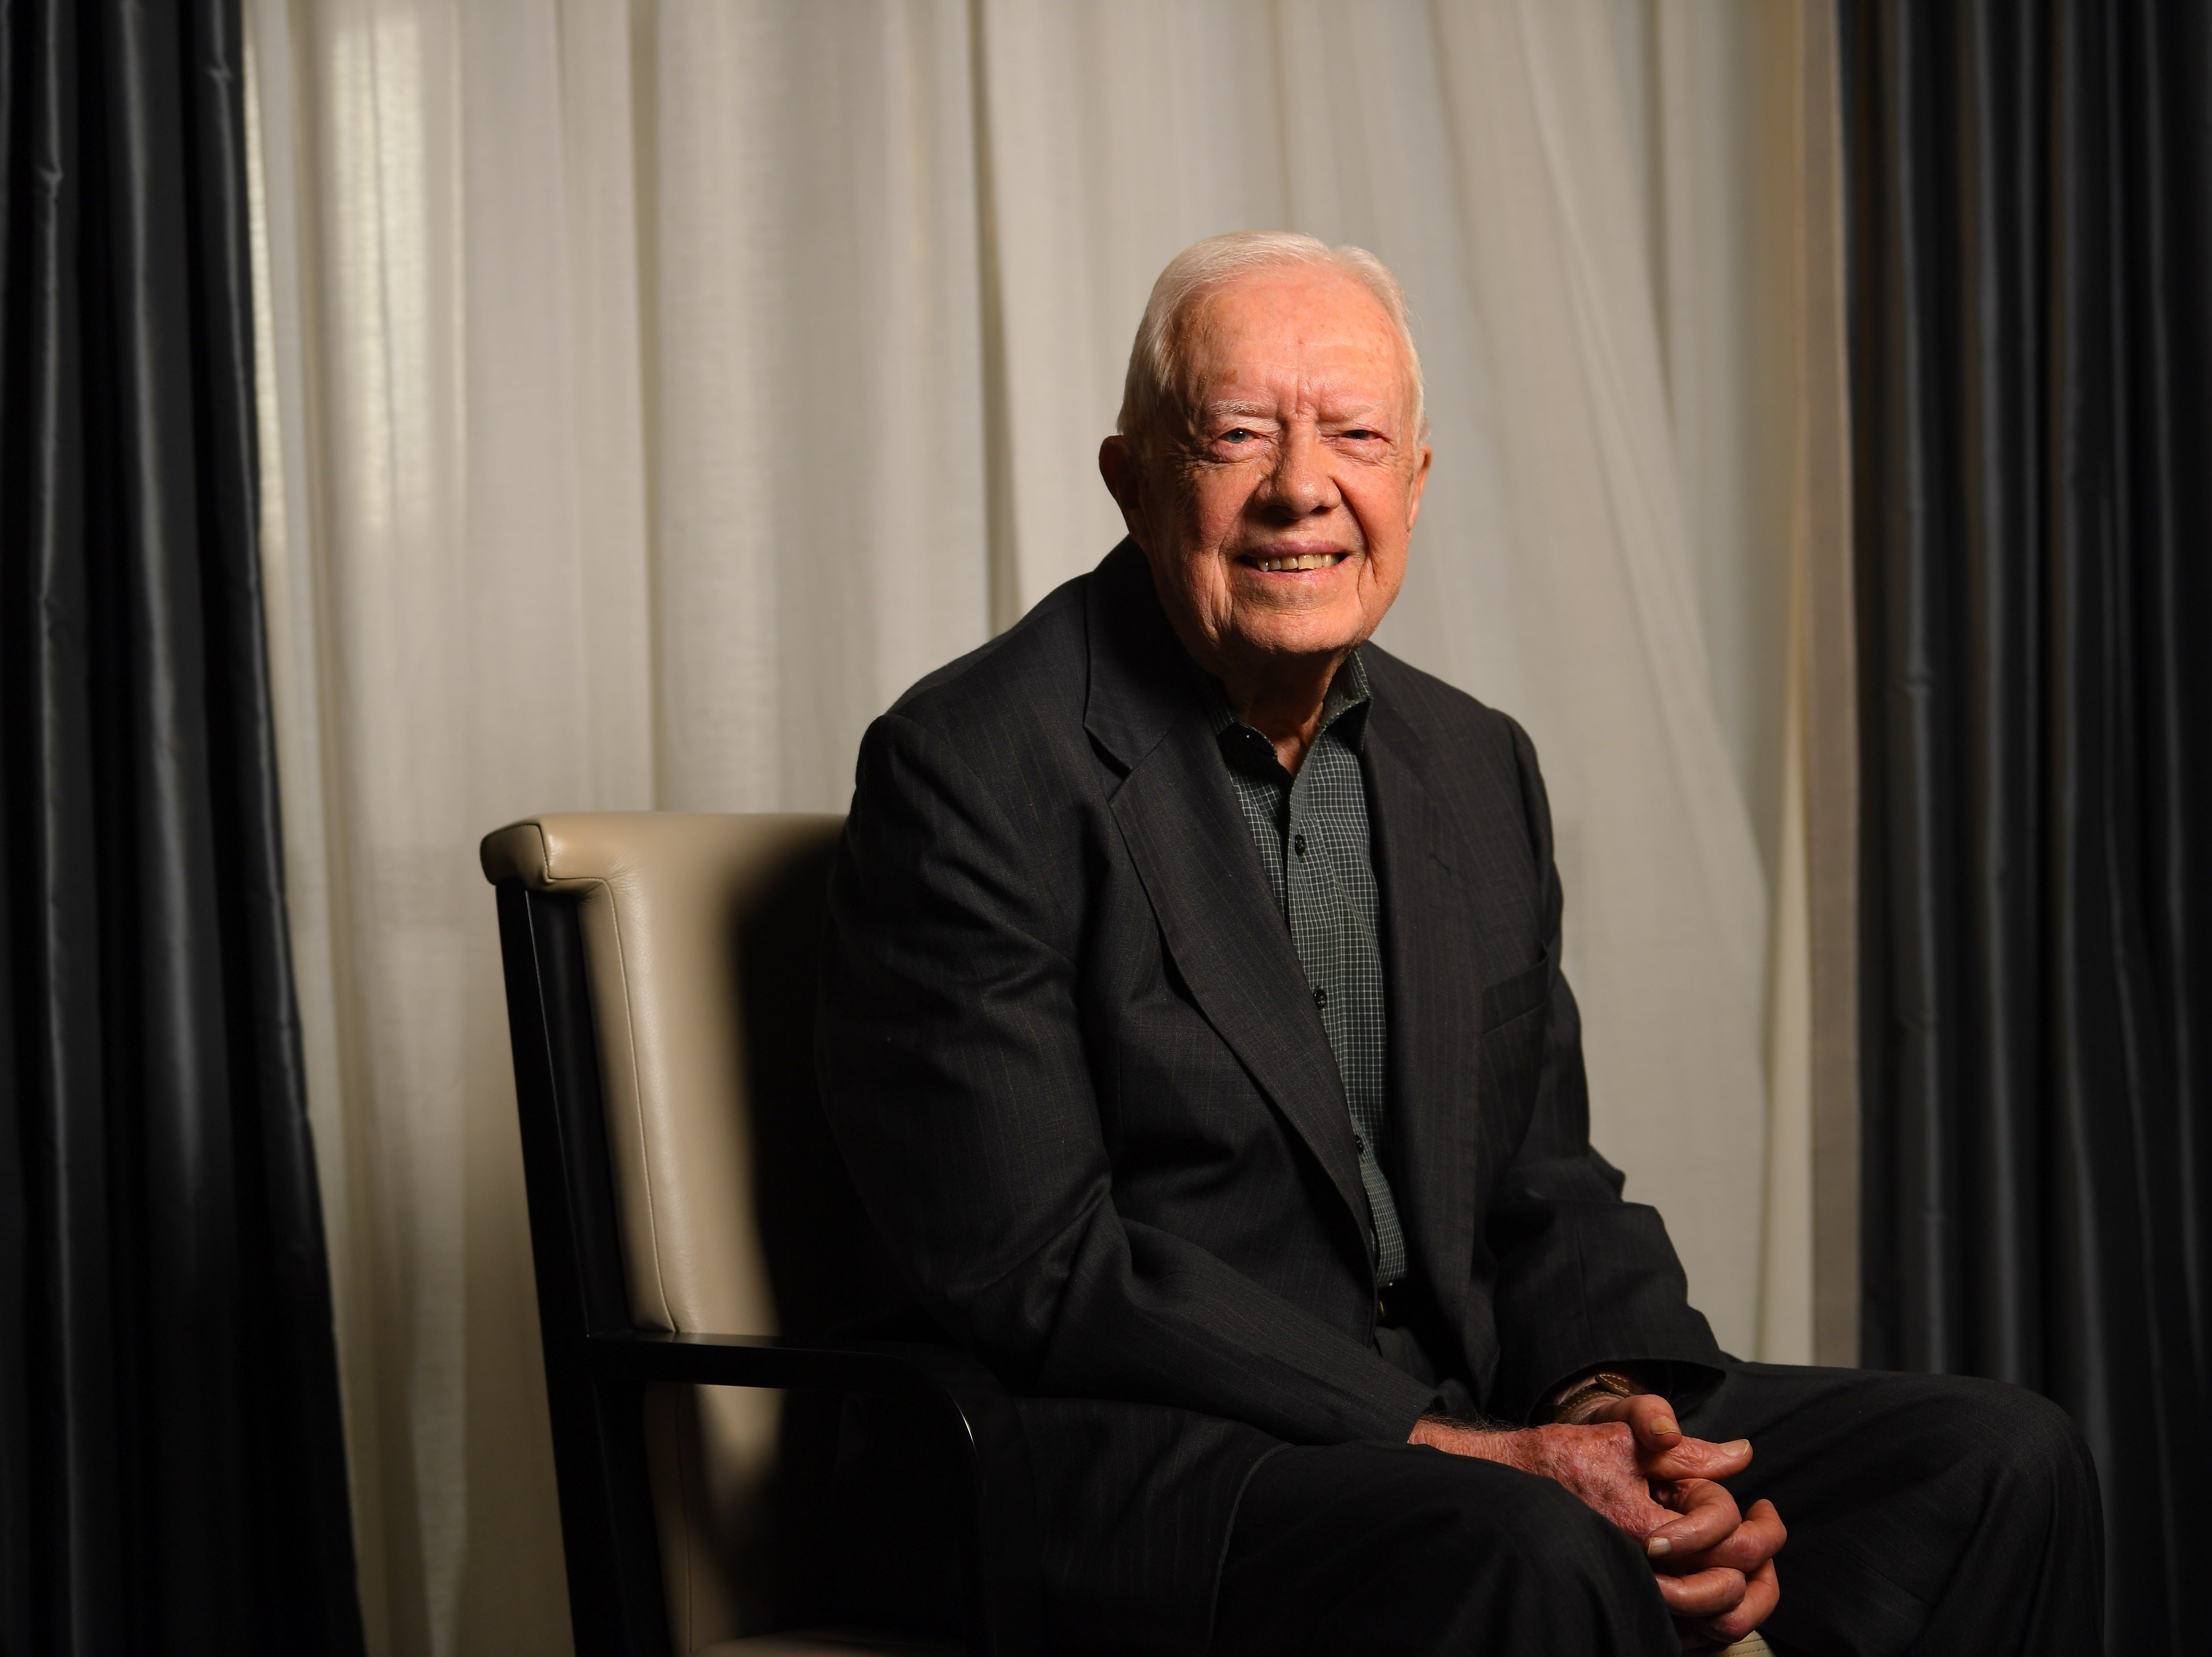 Jimmy Carter sits for a portrait at the Peninsula Hotel in New York on March 26, 2018.